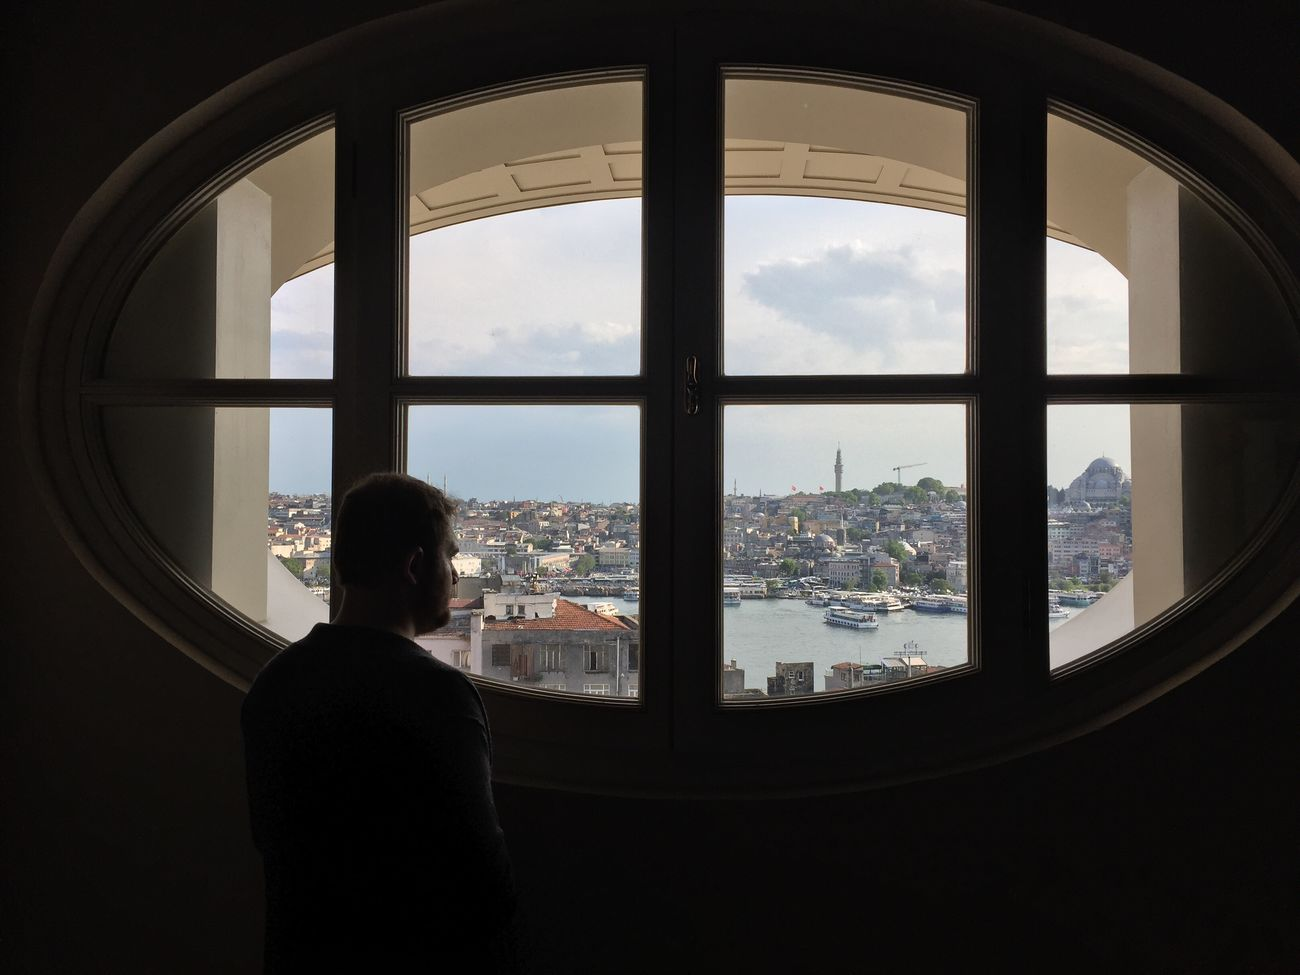 Window Indoors  Sky Looking Through Window Rear View Silhouette Architecture Day Benimkadrajim Bendenbirkare Taking Photos On A Date Karaköy People Casual Clothing Lifestyles Places I've Been Walking Around Professionalphotography Pictureoftheday Istanbul Self Portrait Enjoying Myself FollowMeOnInstagram Standing